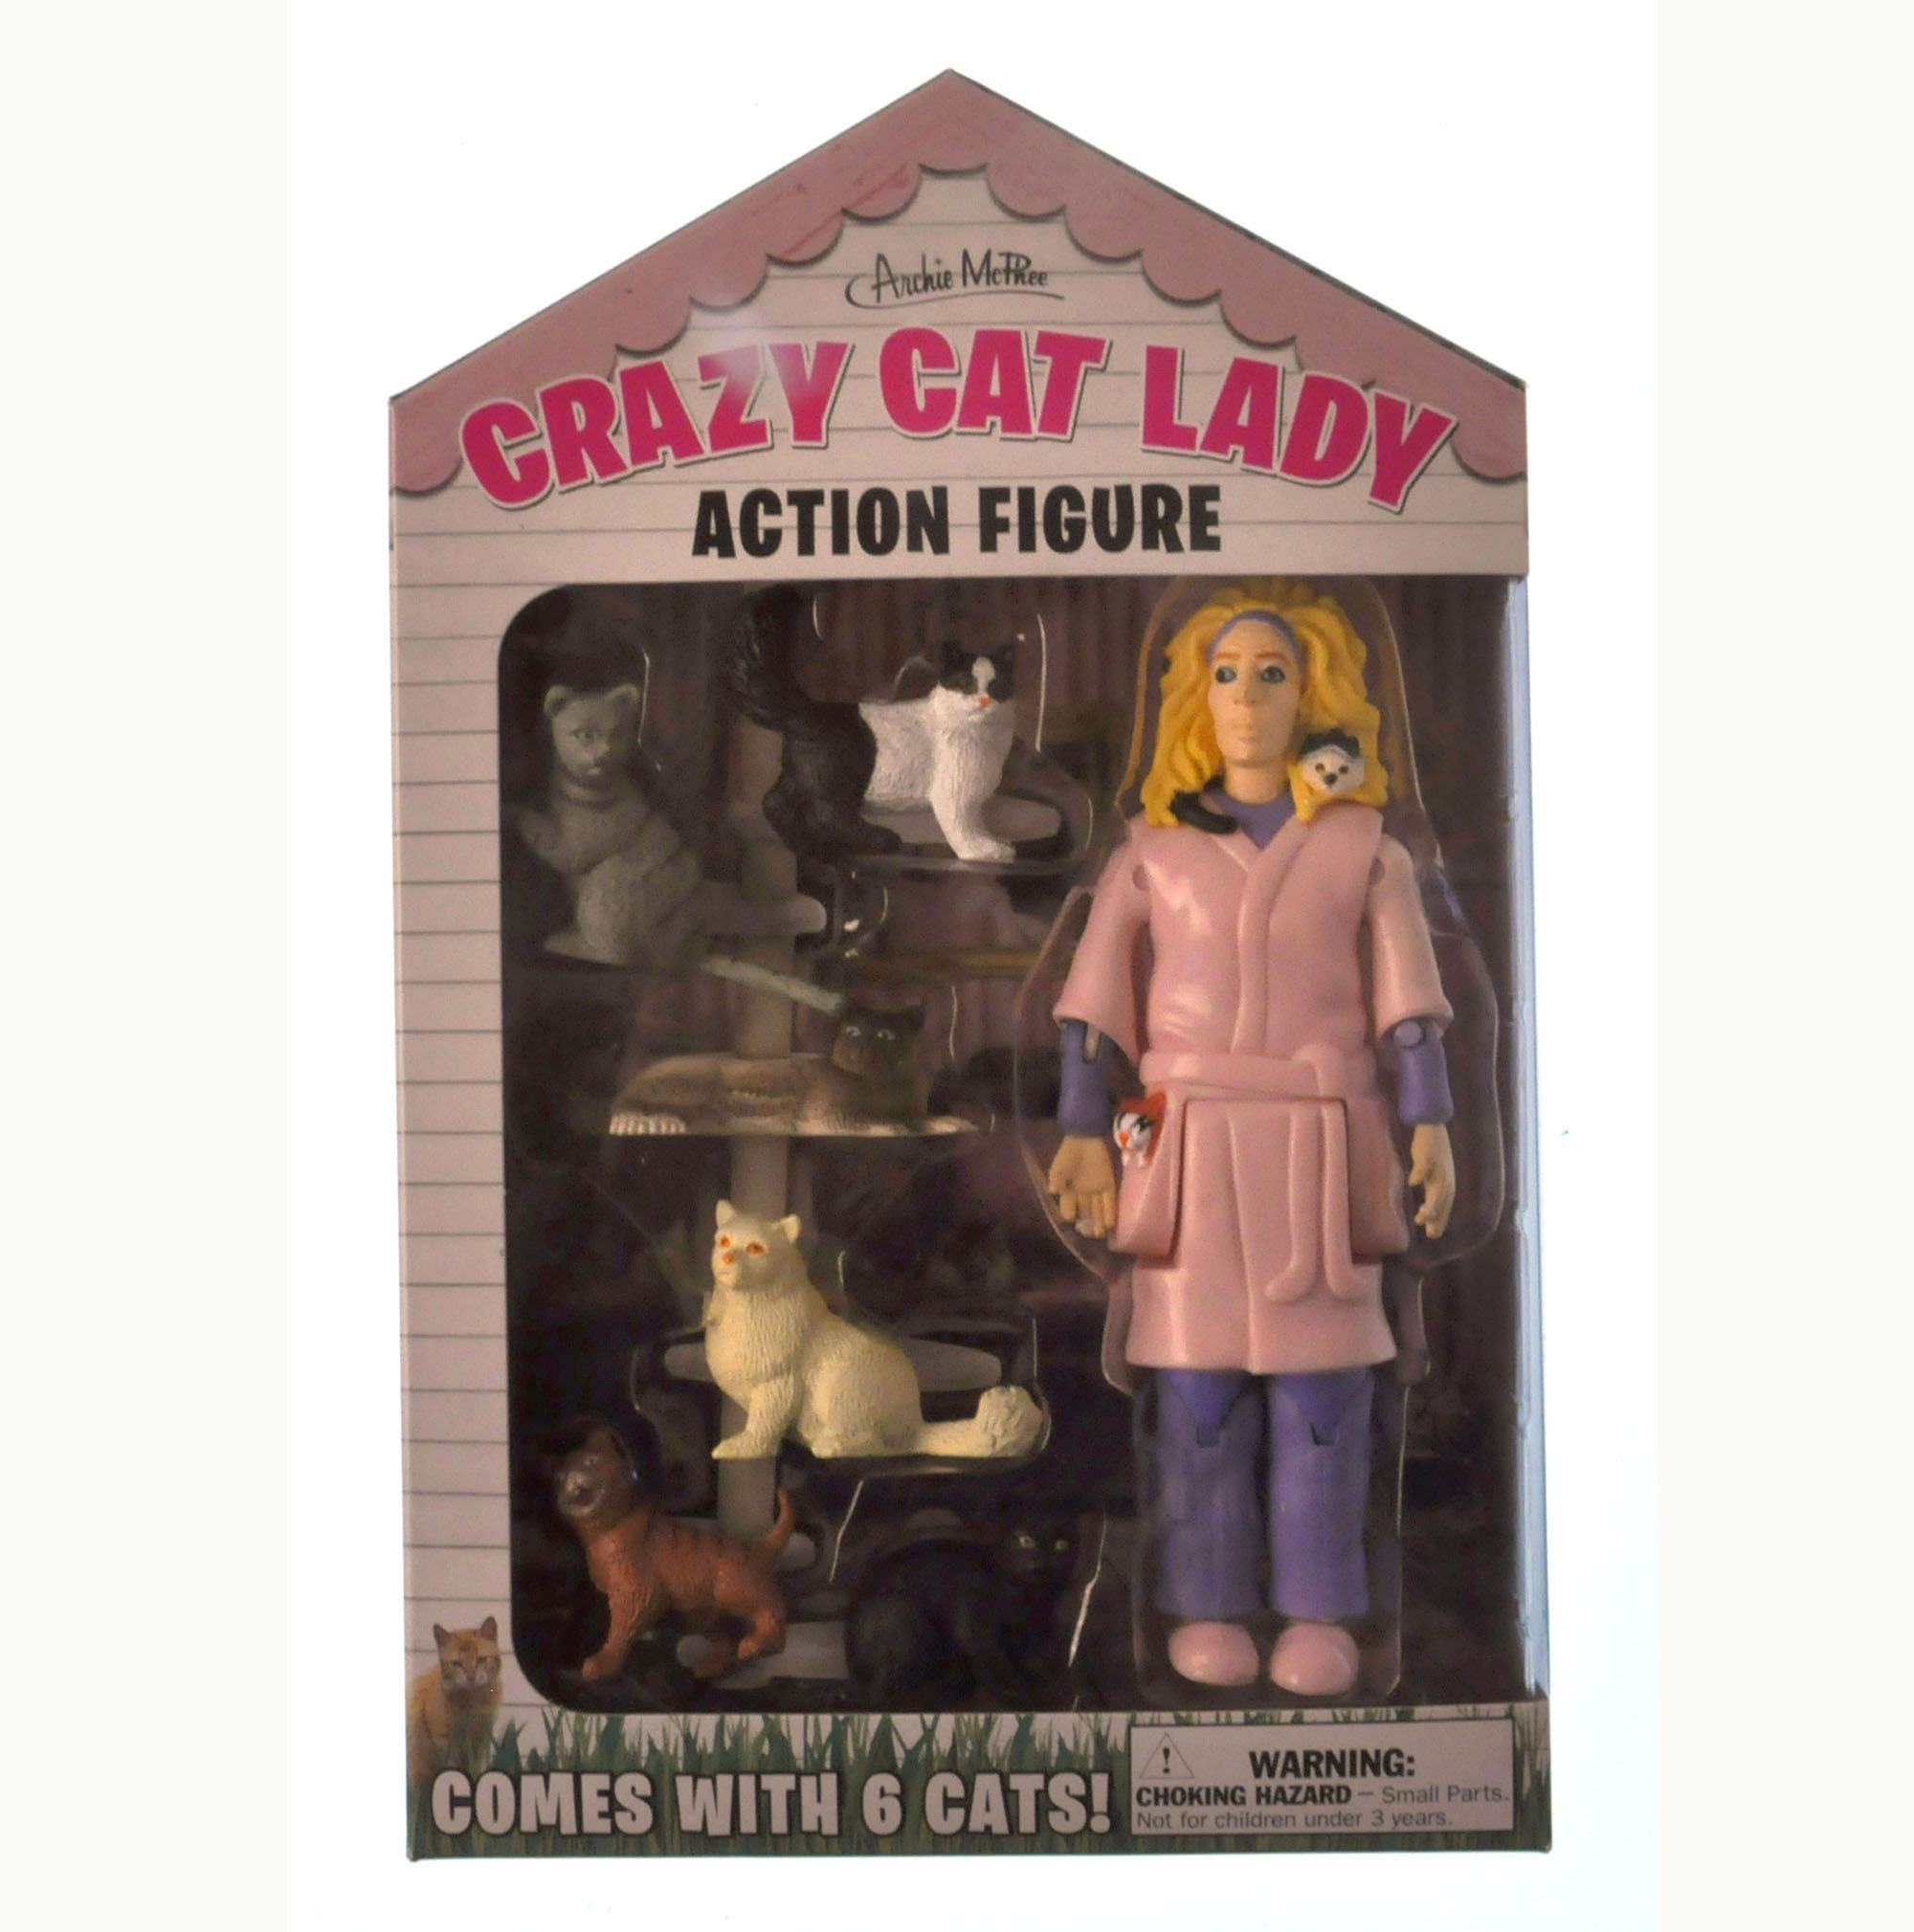 Crazy Cat Lady and Her 6 Cats Action Figure | eBay